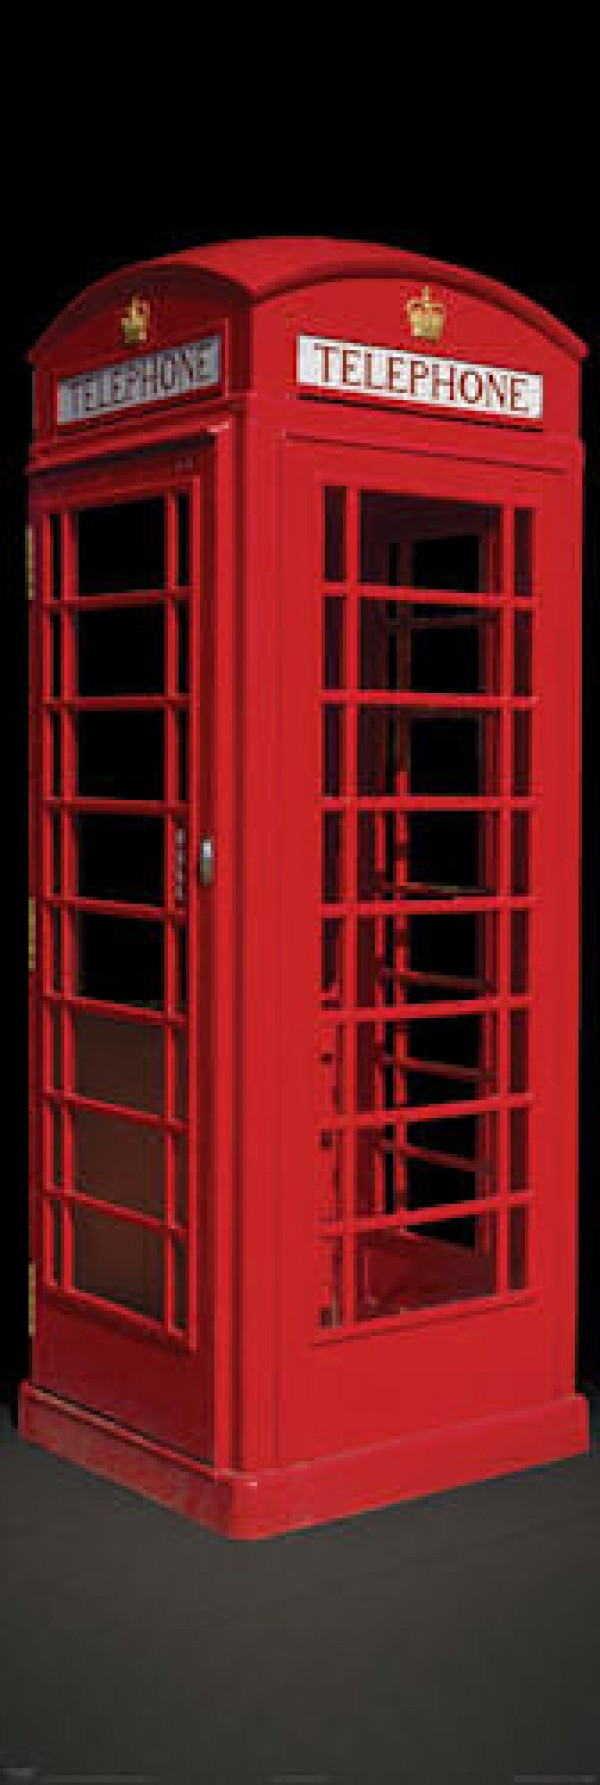 Telephone Box Door Poster